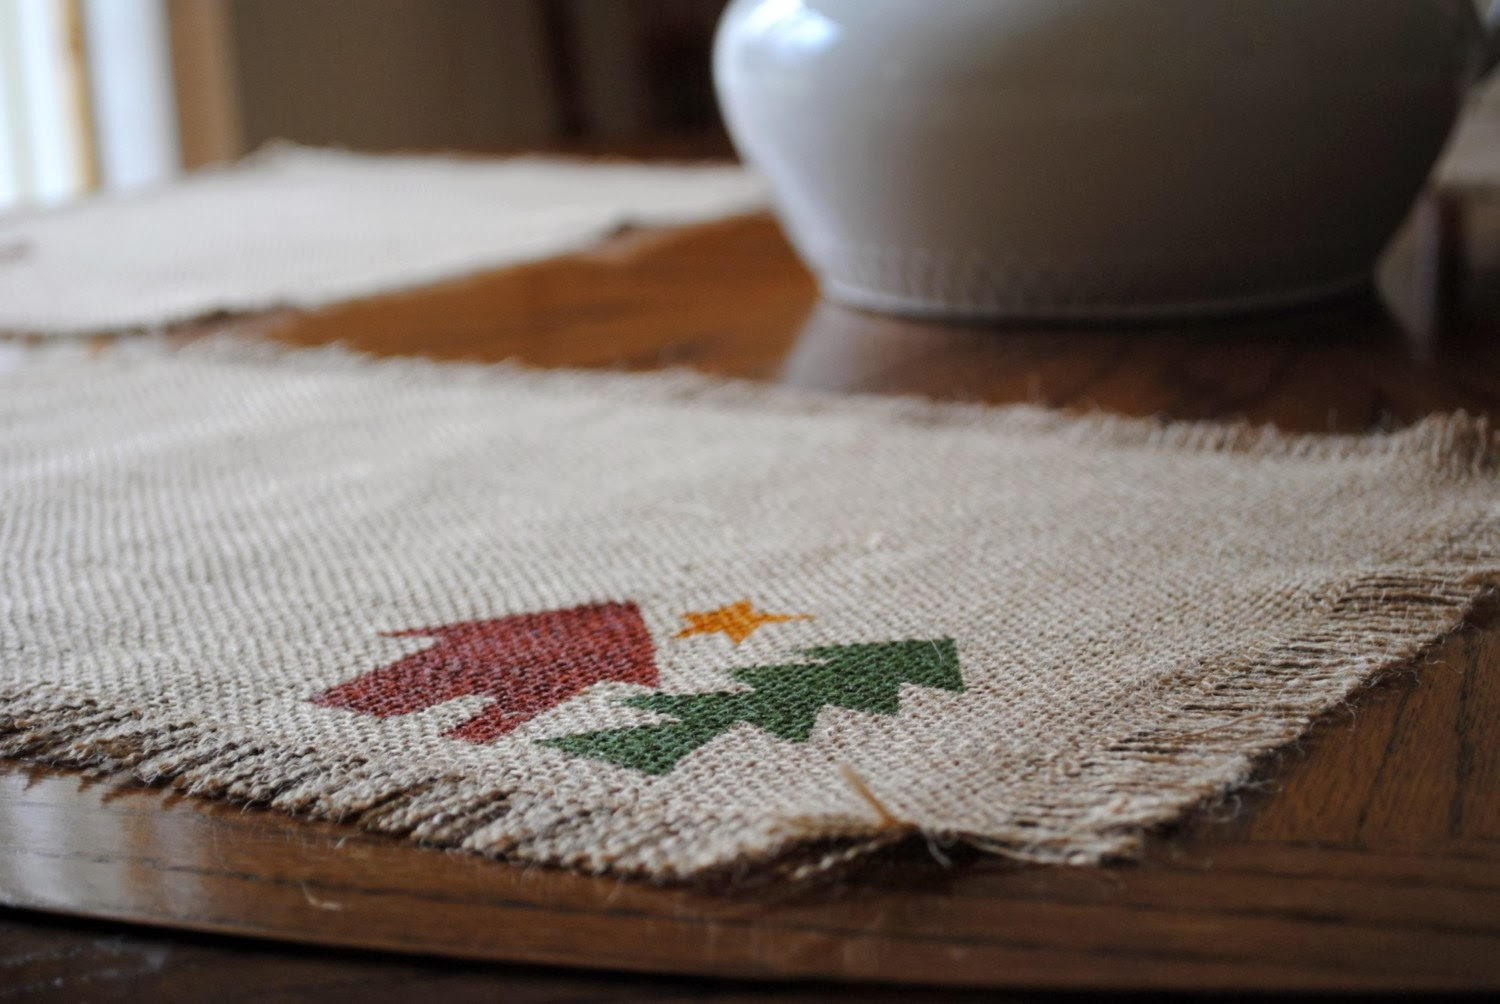 https://www.etsy.com/listing/54873853/clearance-burlap-jute-place-mats-campin